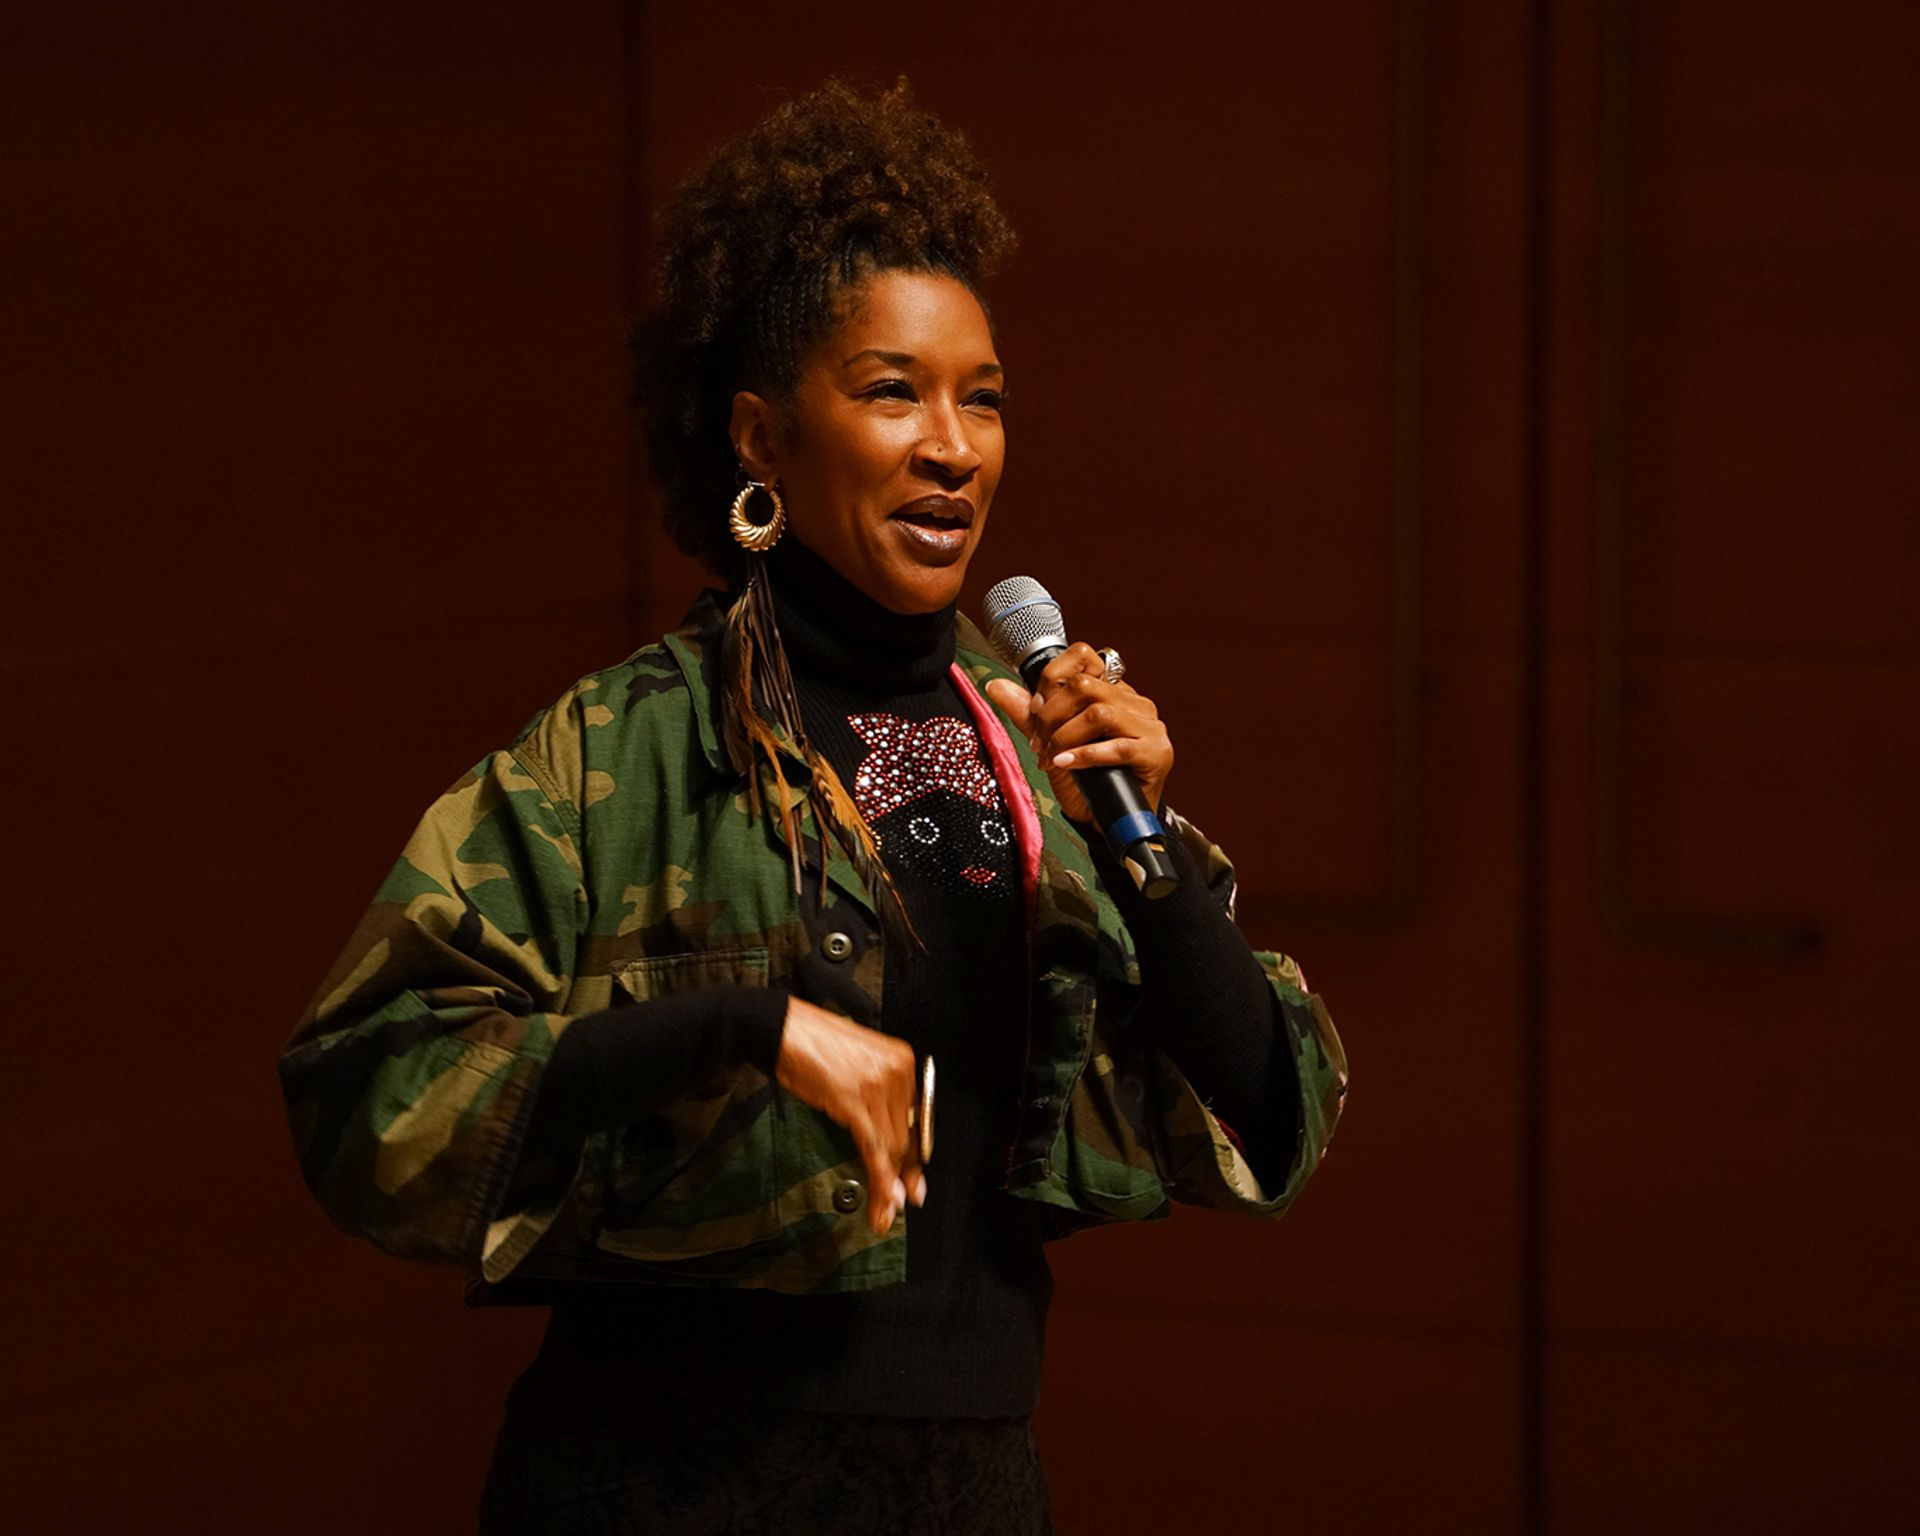 The writer and actress Liza Jessie Peterson performing a scene from her one-woman show The Peculiar Patriot at the Getty Center in Los Angeles Monday night Owen Kolasinski/BFA.com